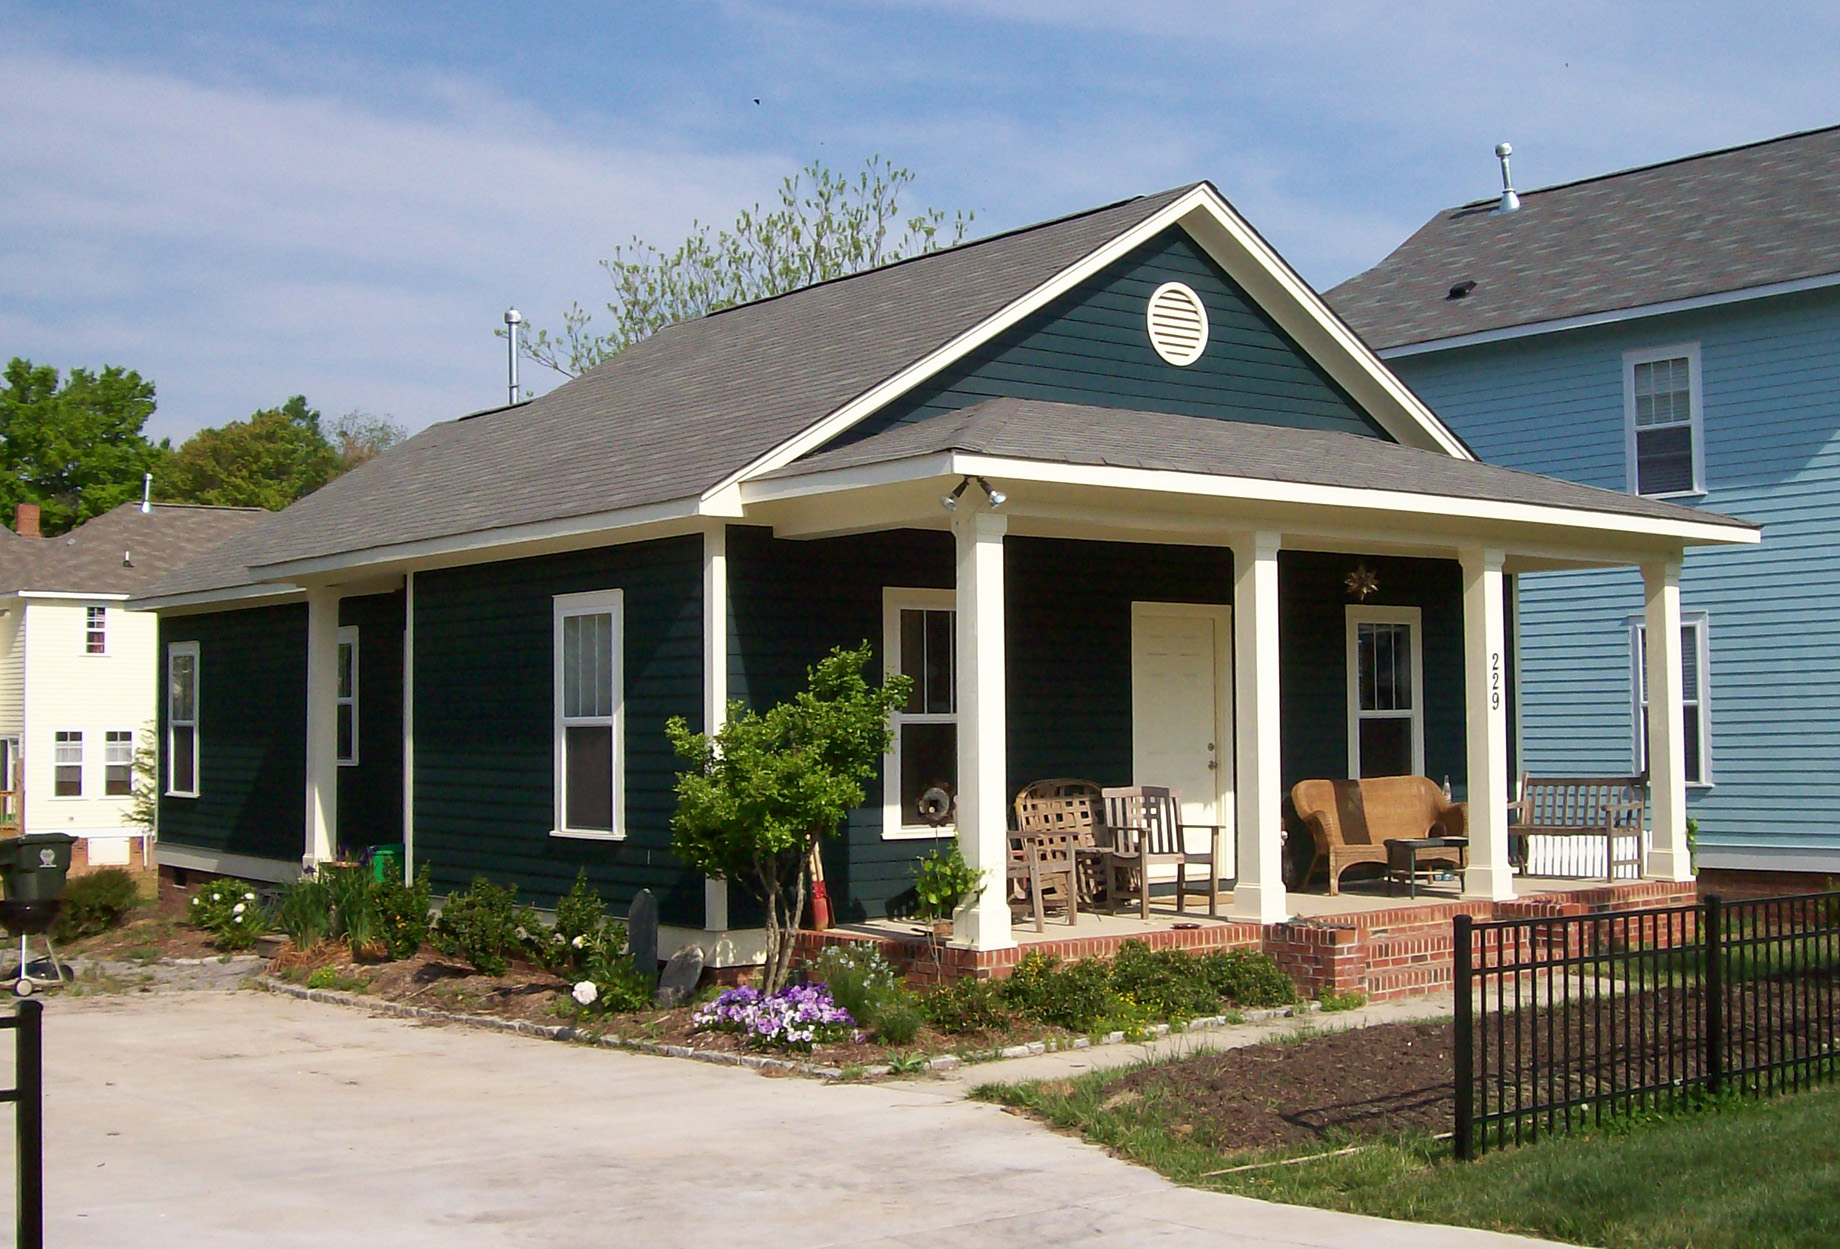 Classic Single Story Bungalow - 10045tt Architectural